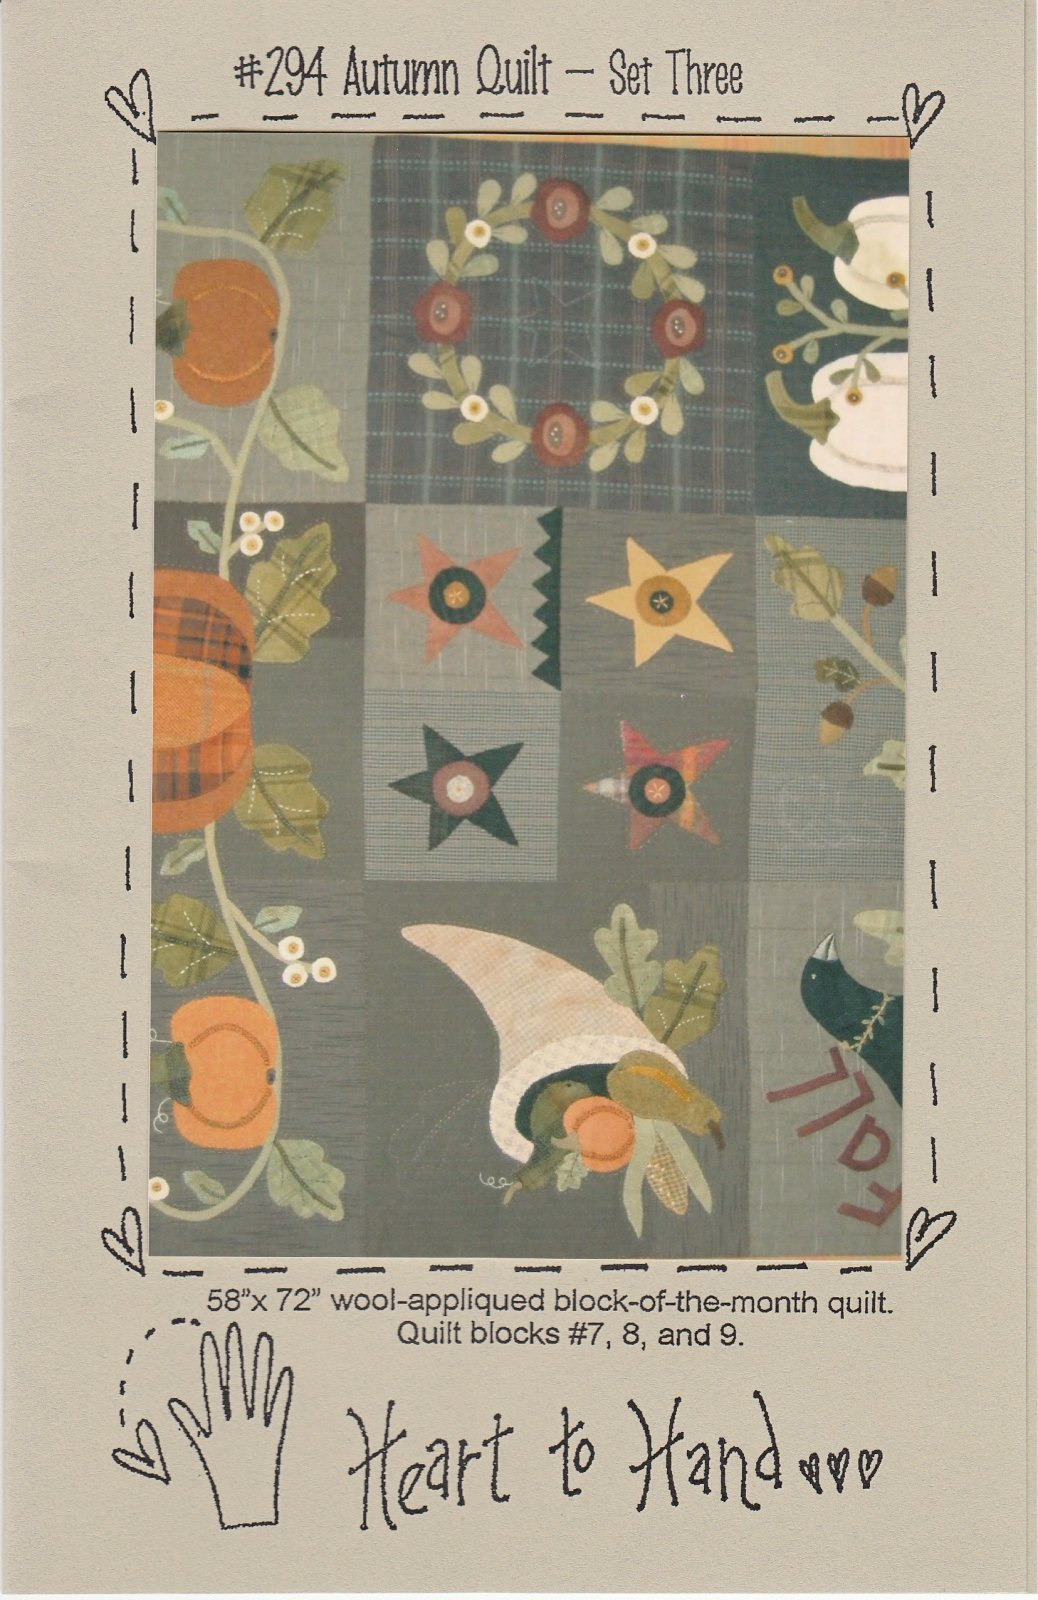 Autumn Quilt Block of the Month Blocks 789